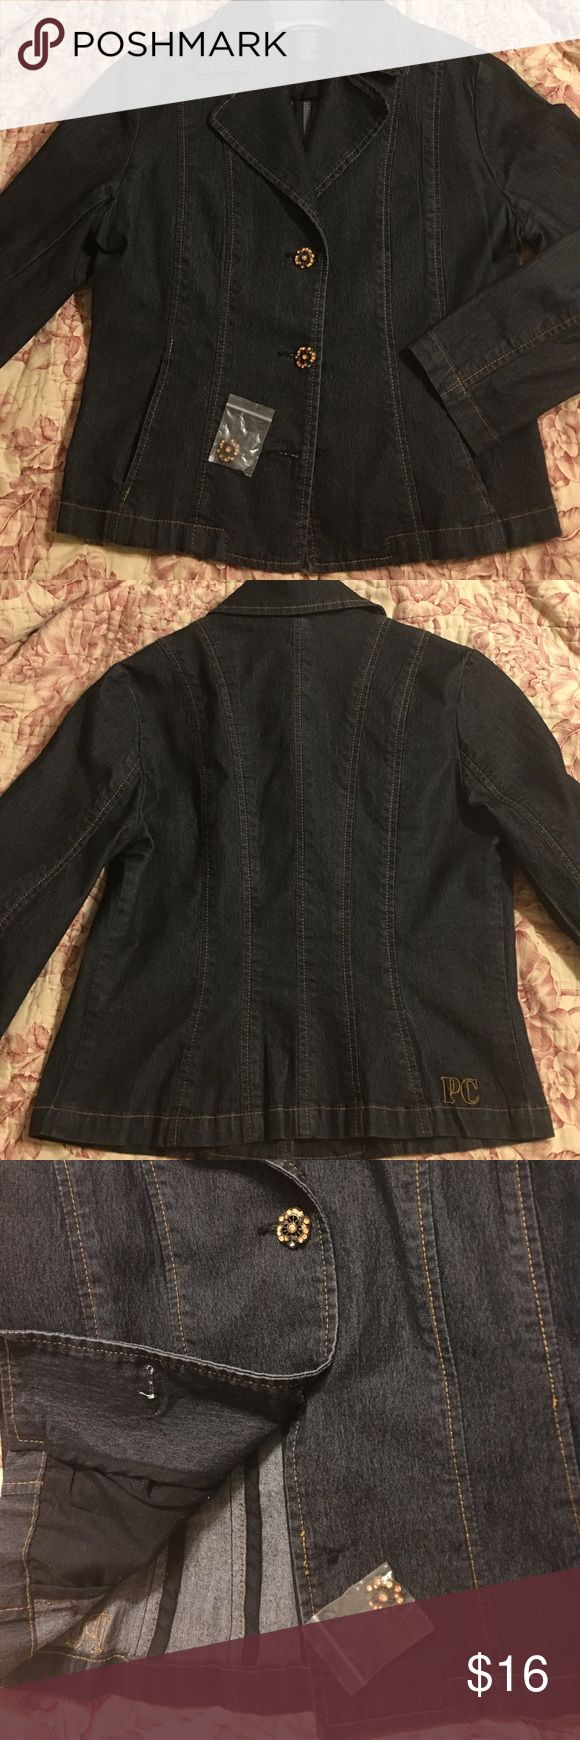 Denim jacket Dark denim jacket! Love it! I wore it to work with dresses and heels! It's very dressy and slimming! (Button came off, but I don't know how to sew...The button is included!😀) Pierre Cardin Jackets & Coats Jean Jackets